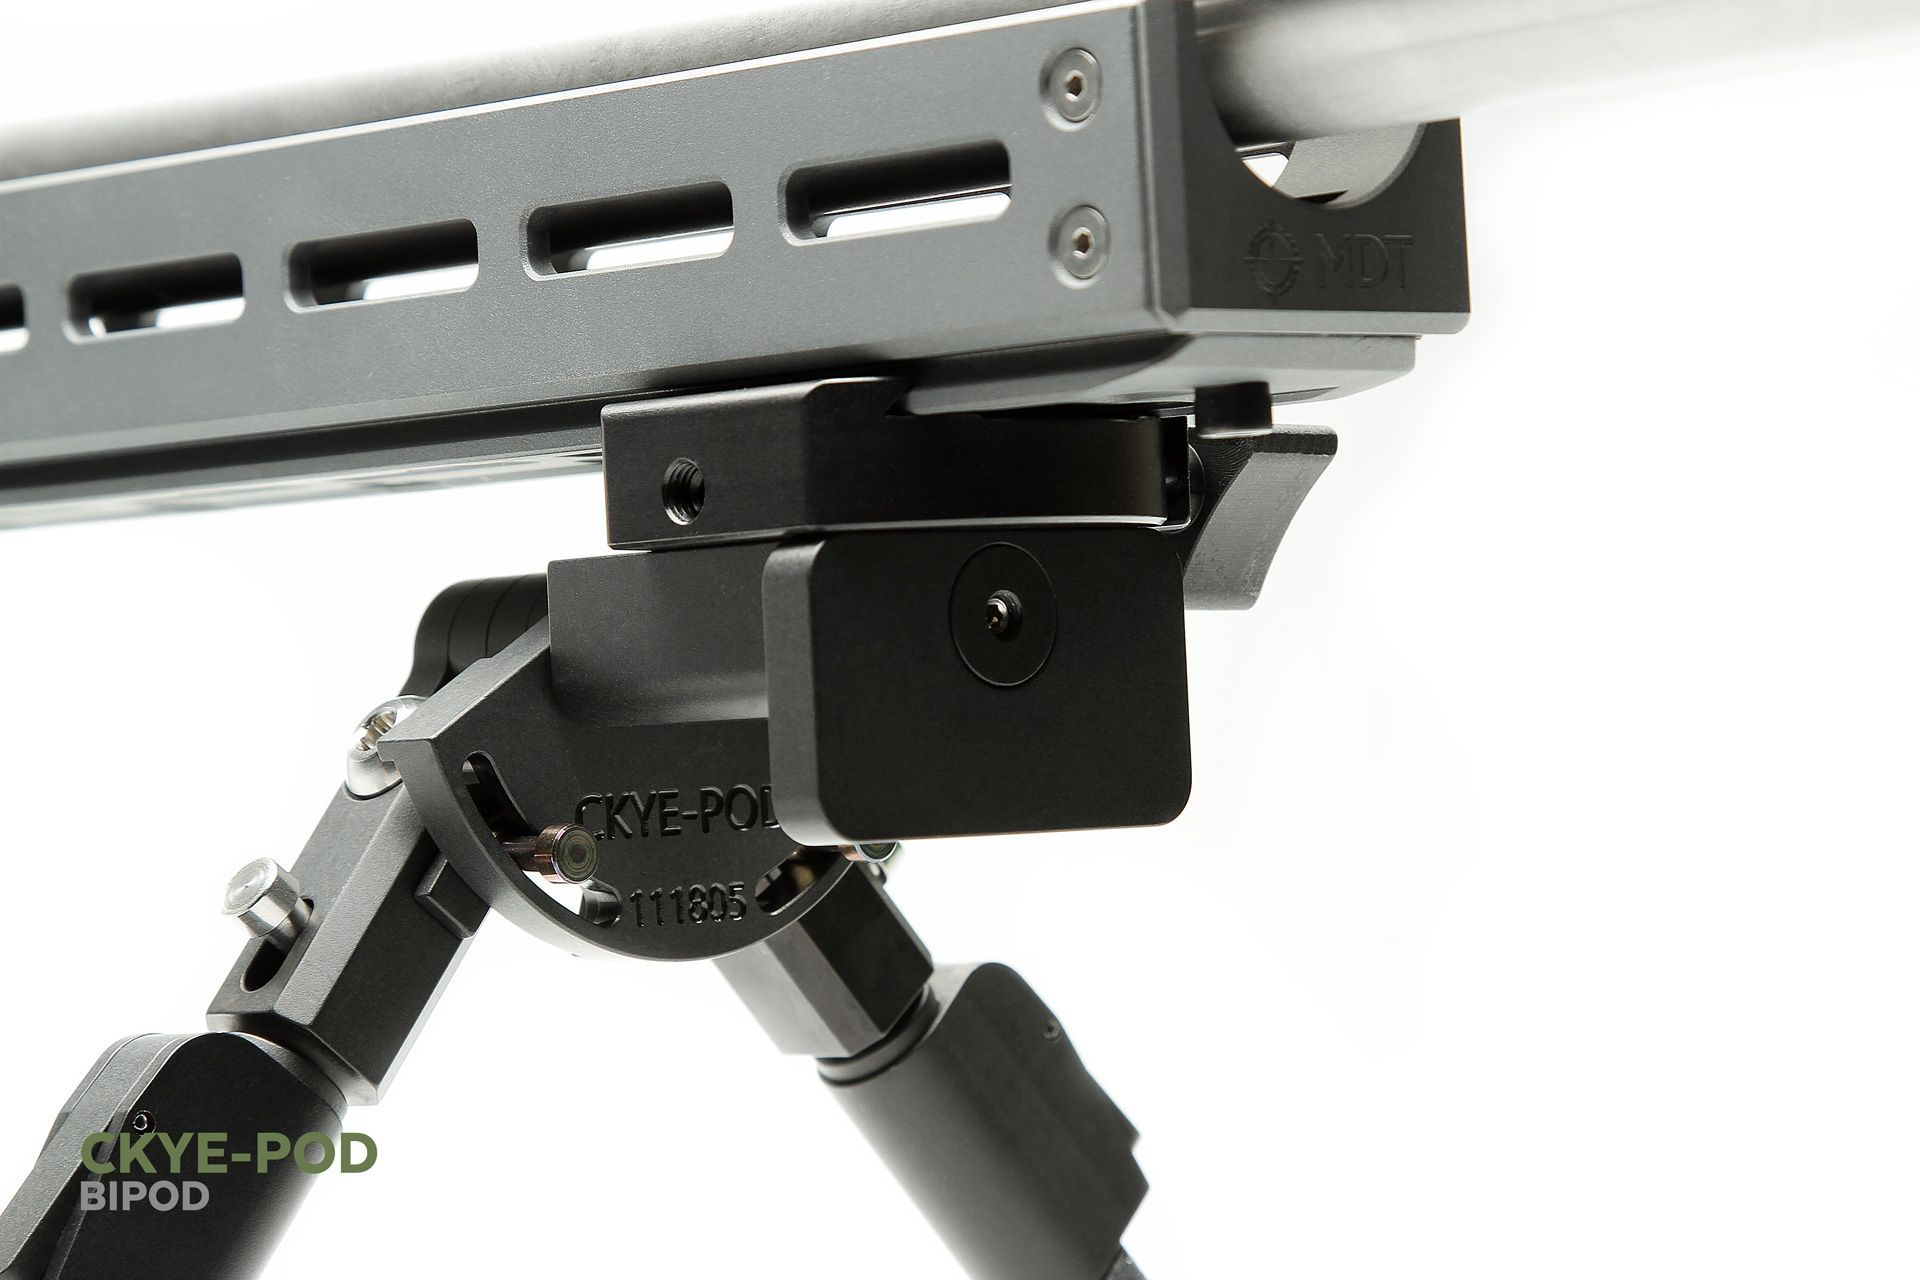 MDT CKYE-POD Fully Adjustable Bipod - Picatinny or ARCA Rail Compatible - Australian Tactical Precision